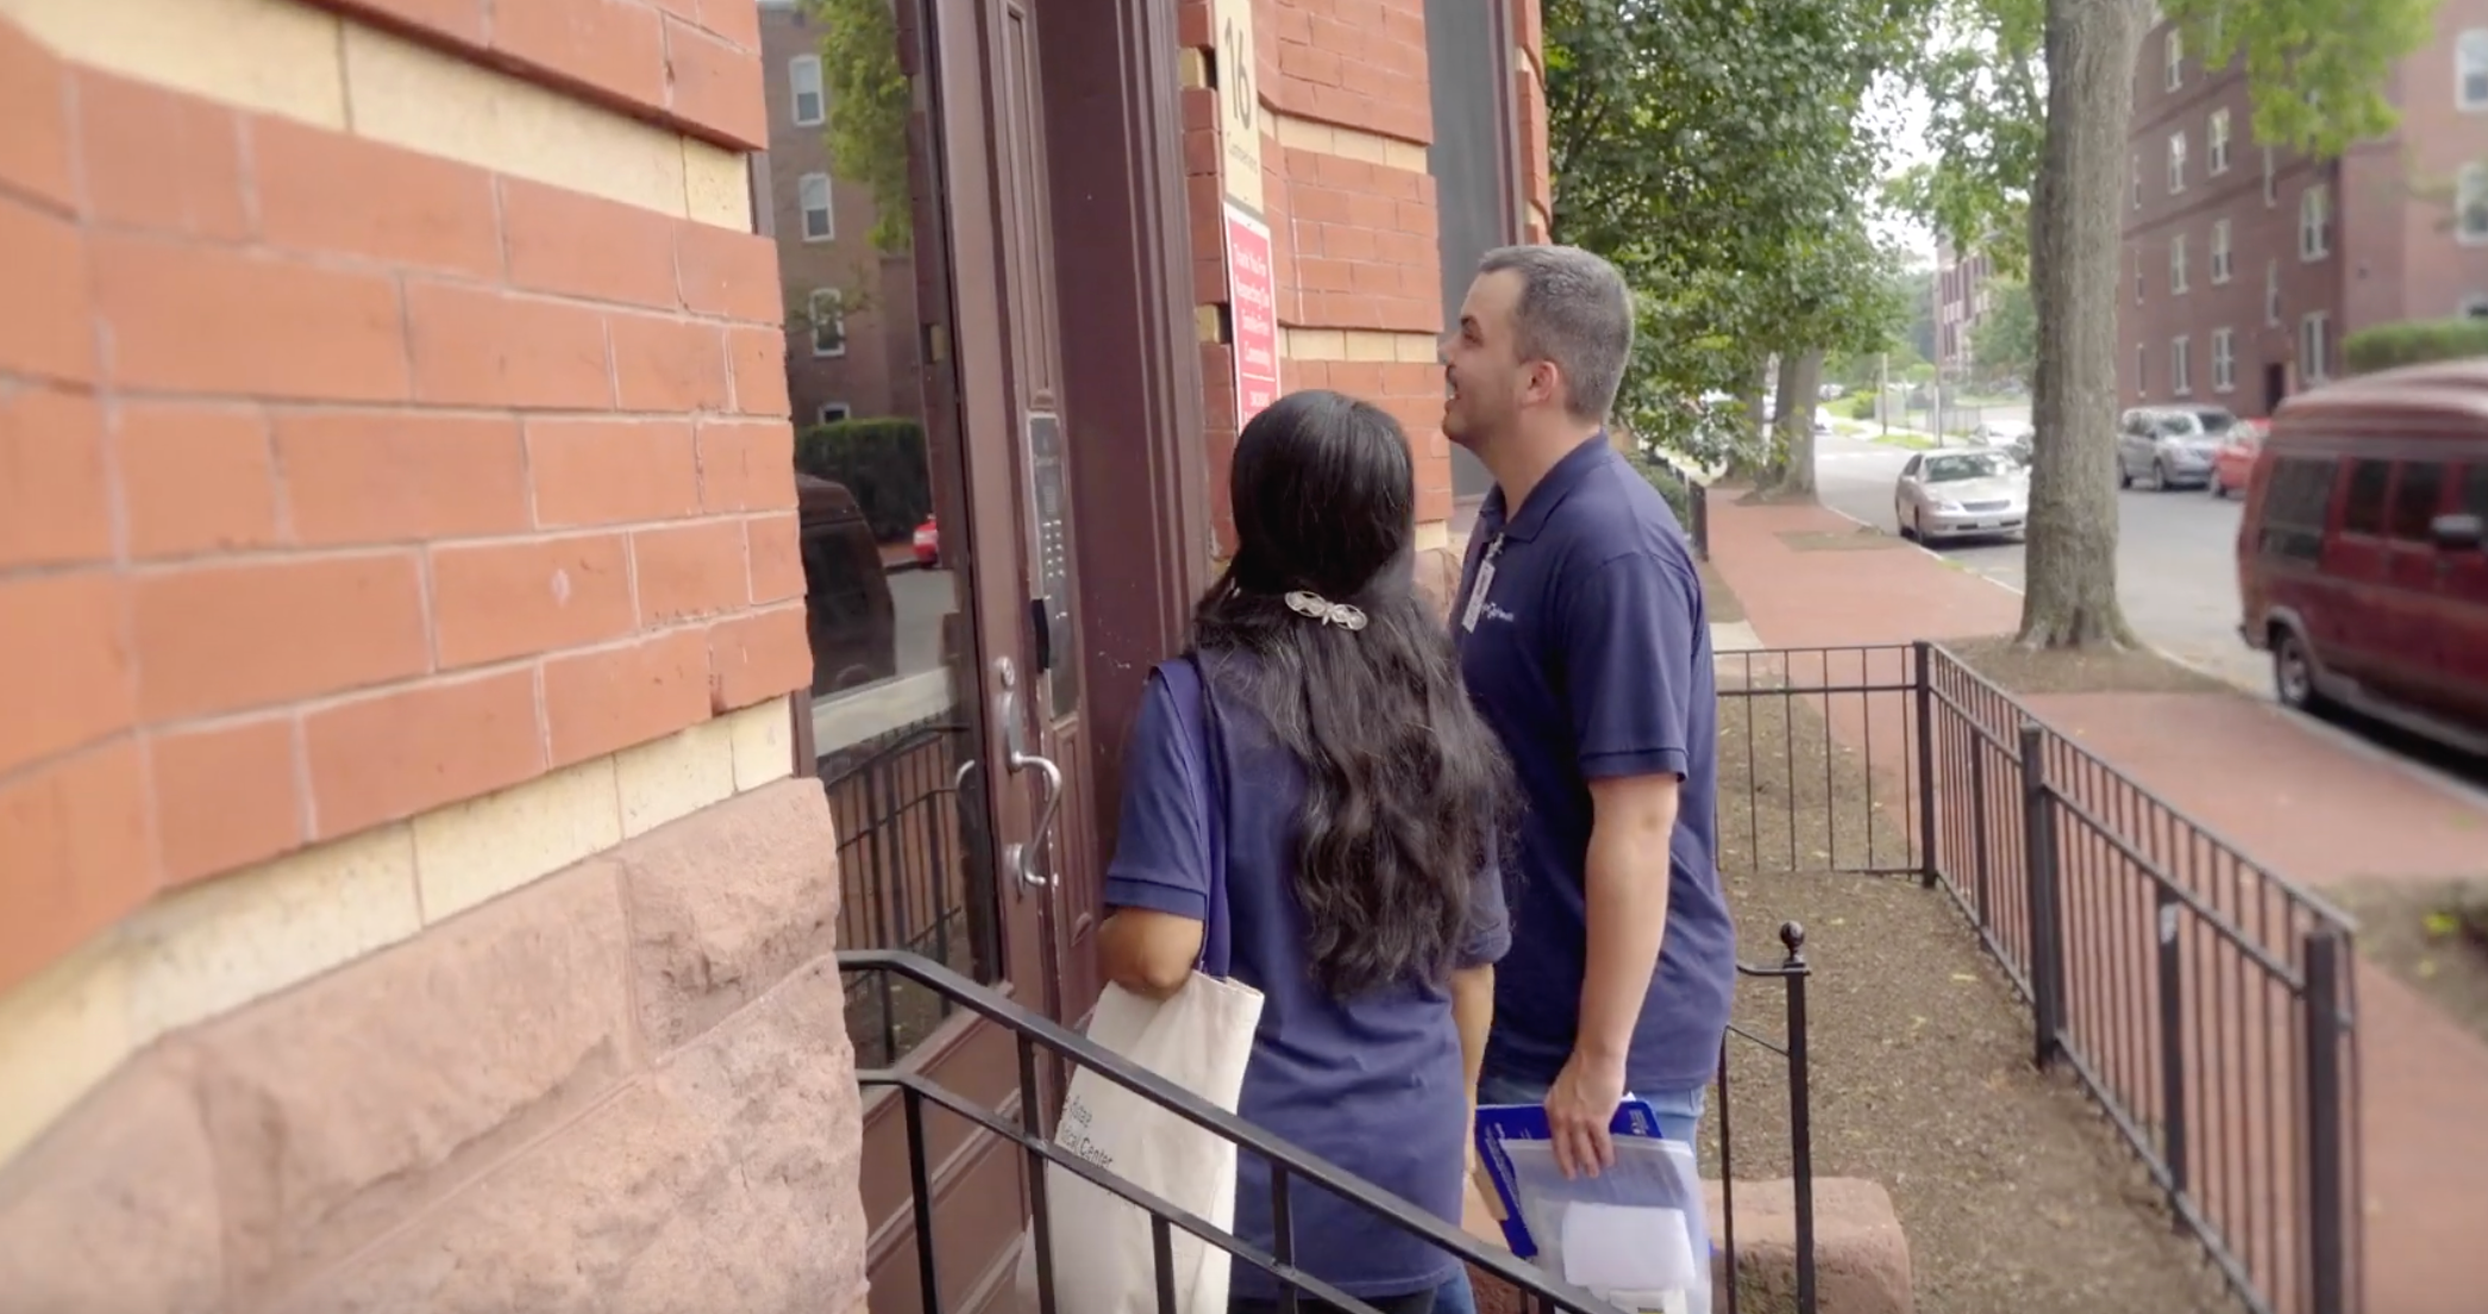 Two community health workers approach the front door of an apartment building